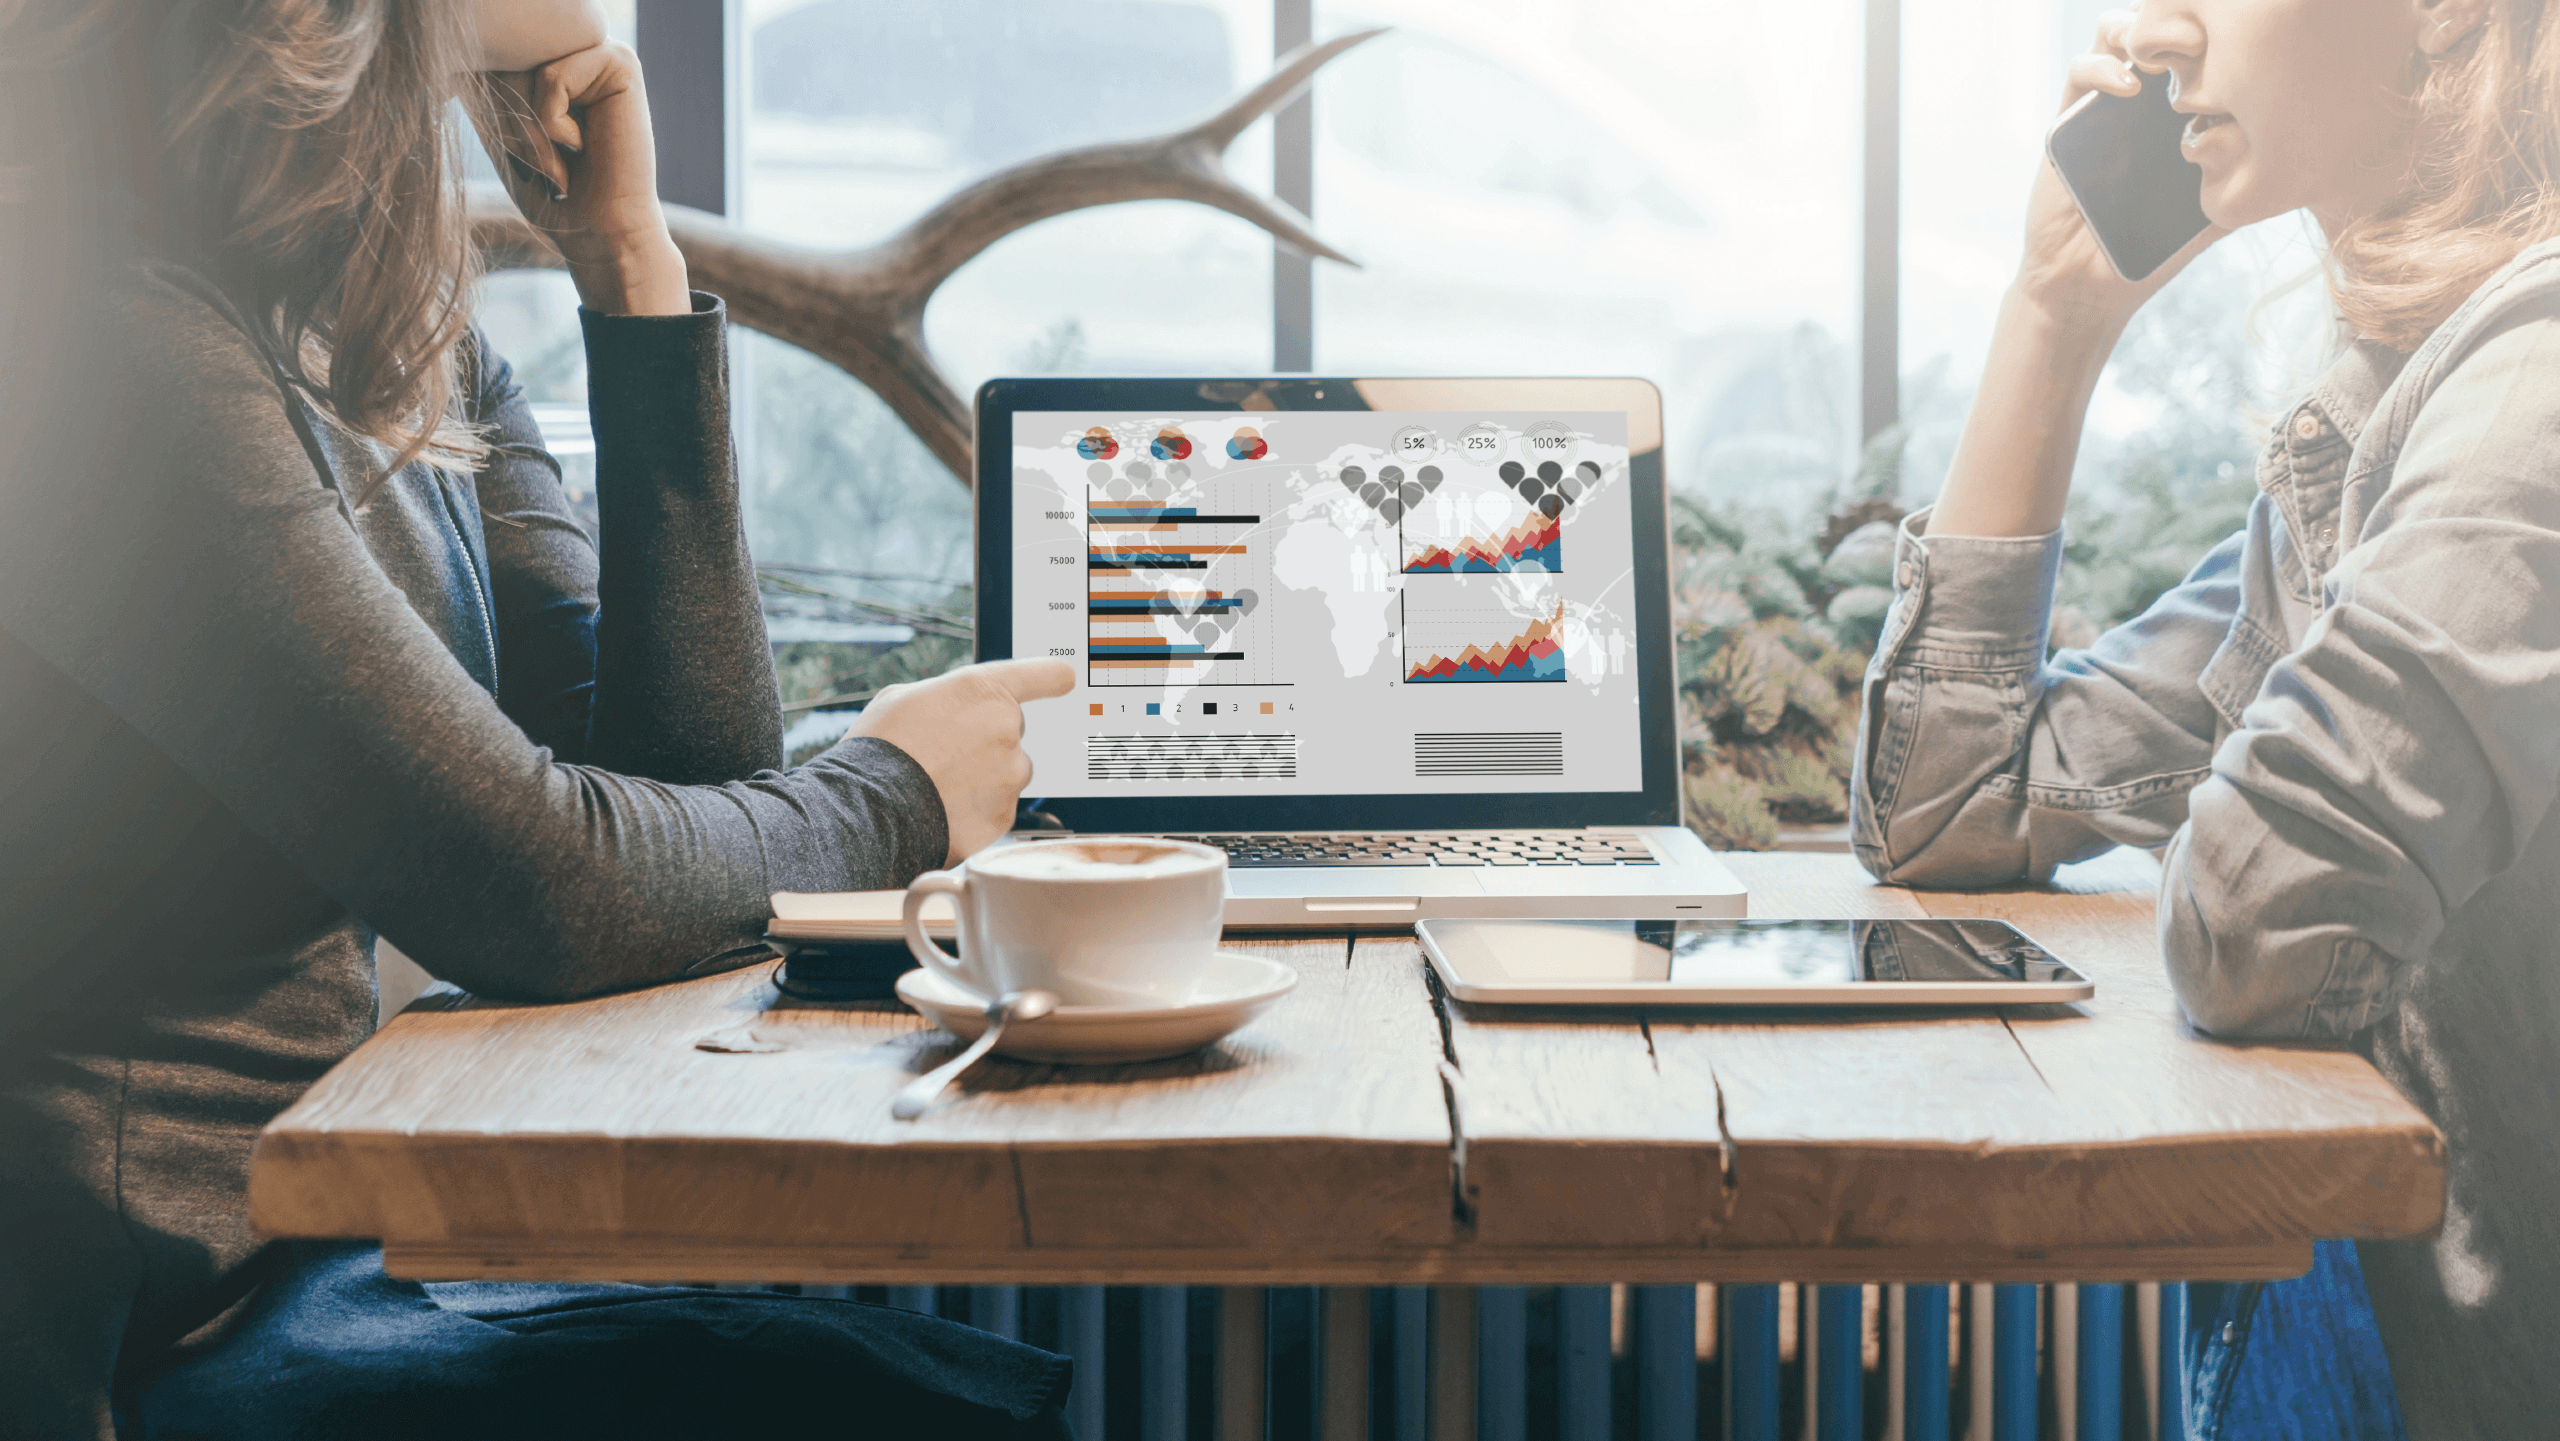 People looking at the screen with analytics of a small business marketing campaign